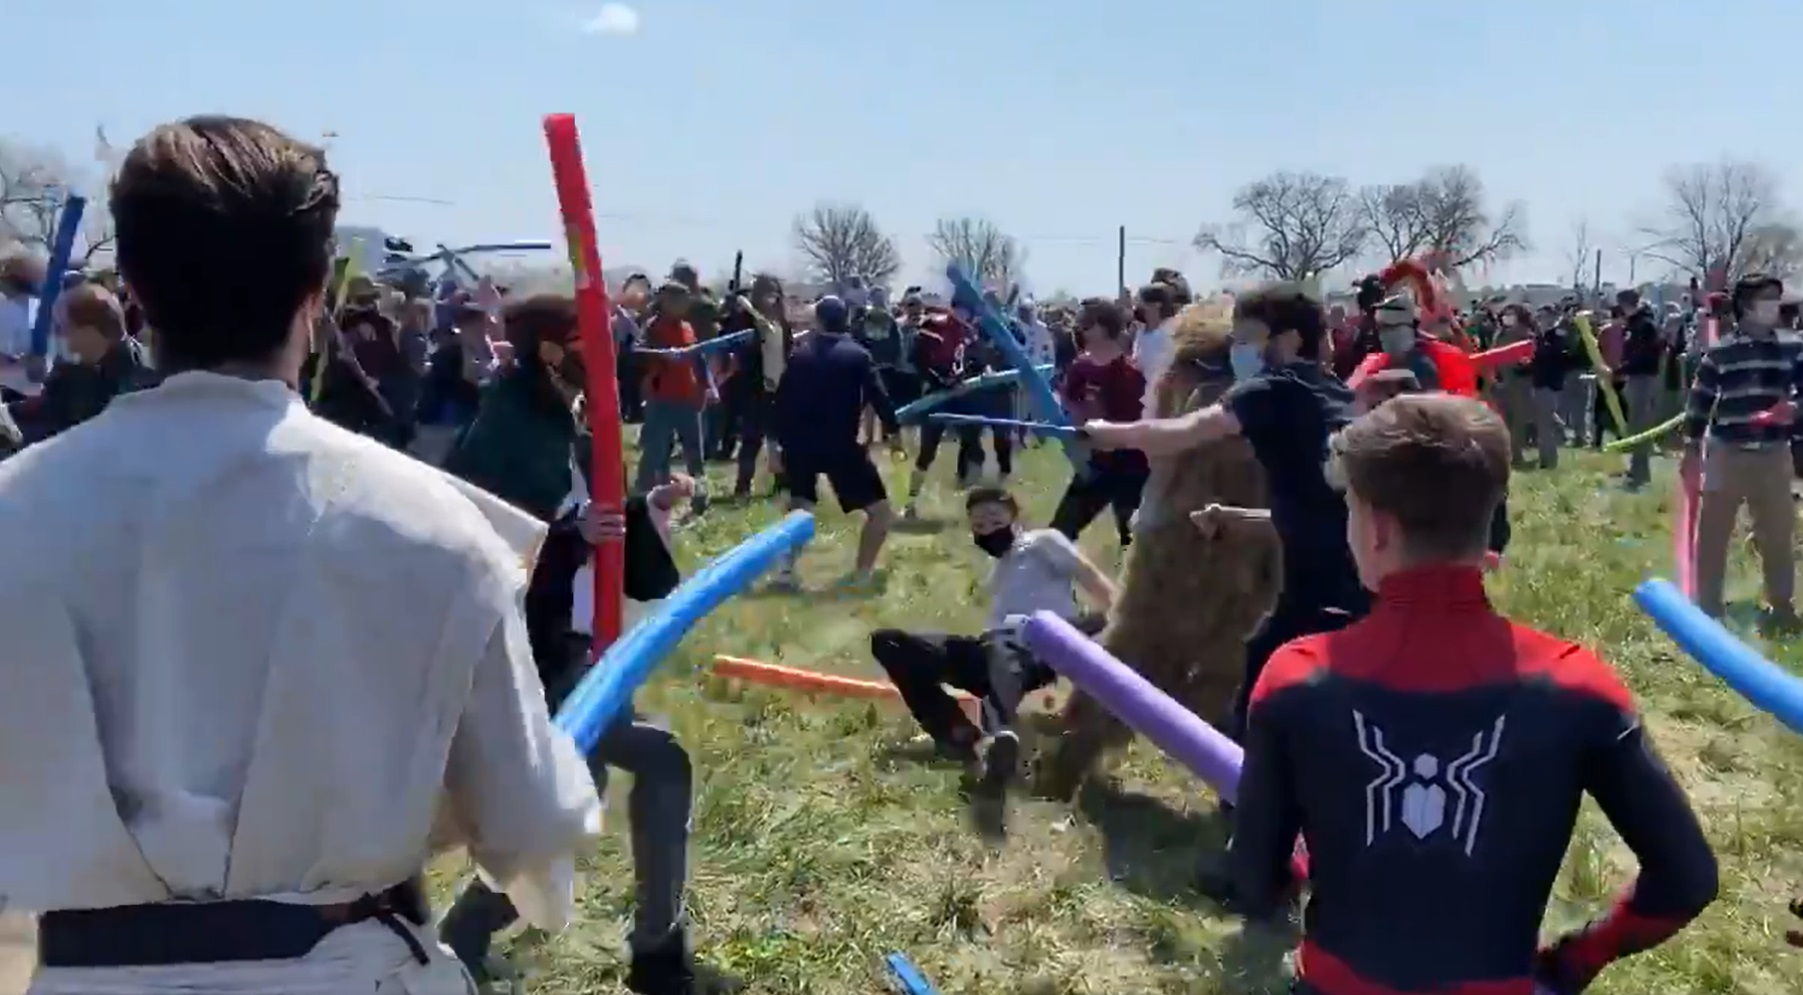 People named josh fight with pool noodles in Nebraska